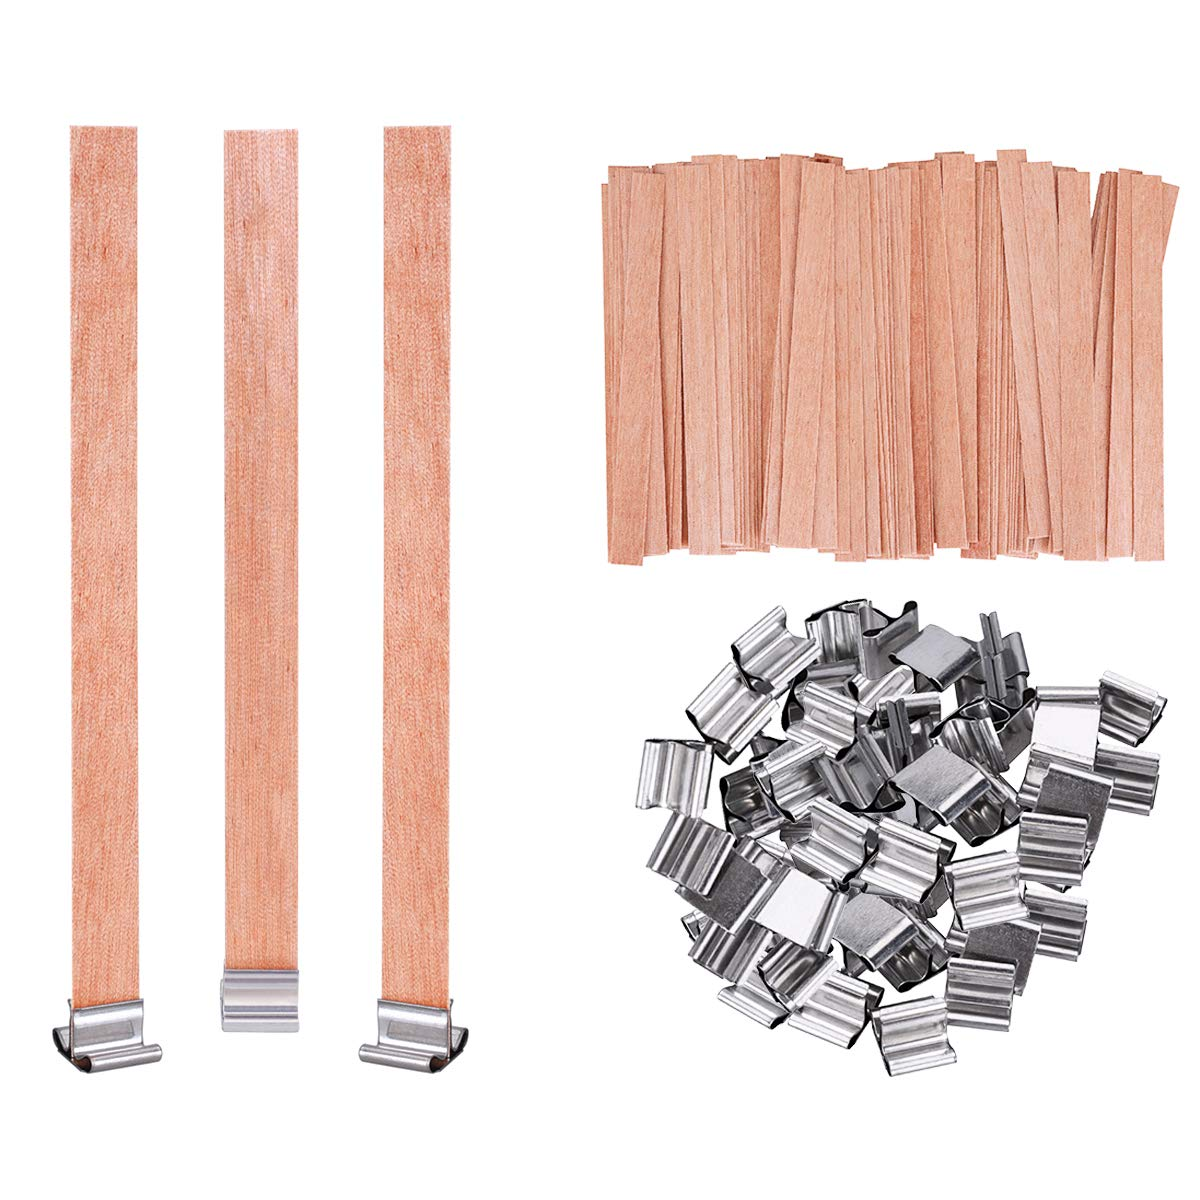 YoungRich 100PCS Wood Candle Wick with Metal Fixing Base DIY Material Easy Use Smokeless Eco-Friendly Premium for Candle Making Romantic Ambiance Dating Wedding Birthday 0.8x9cm Natural